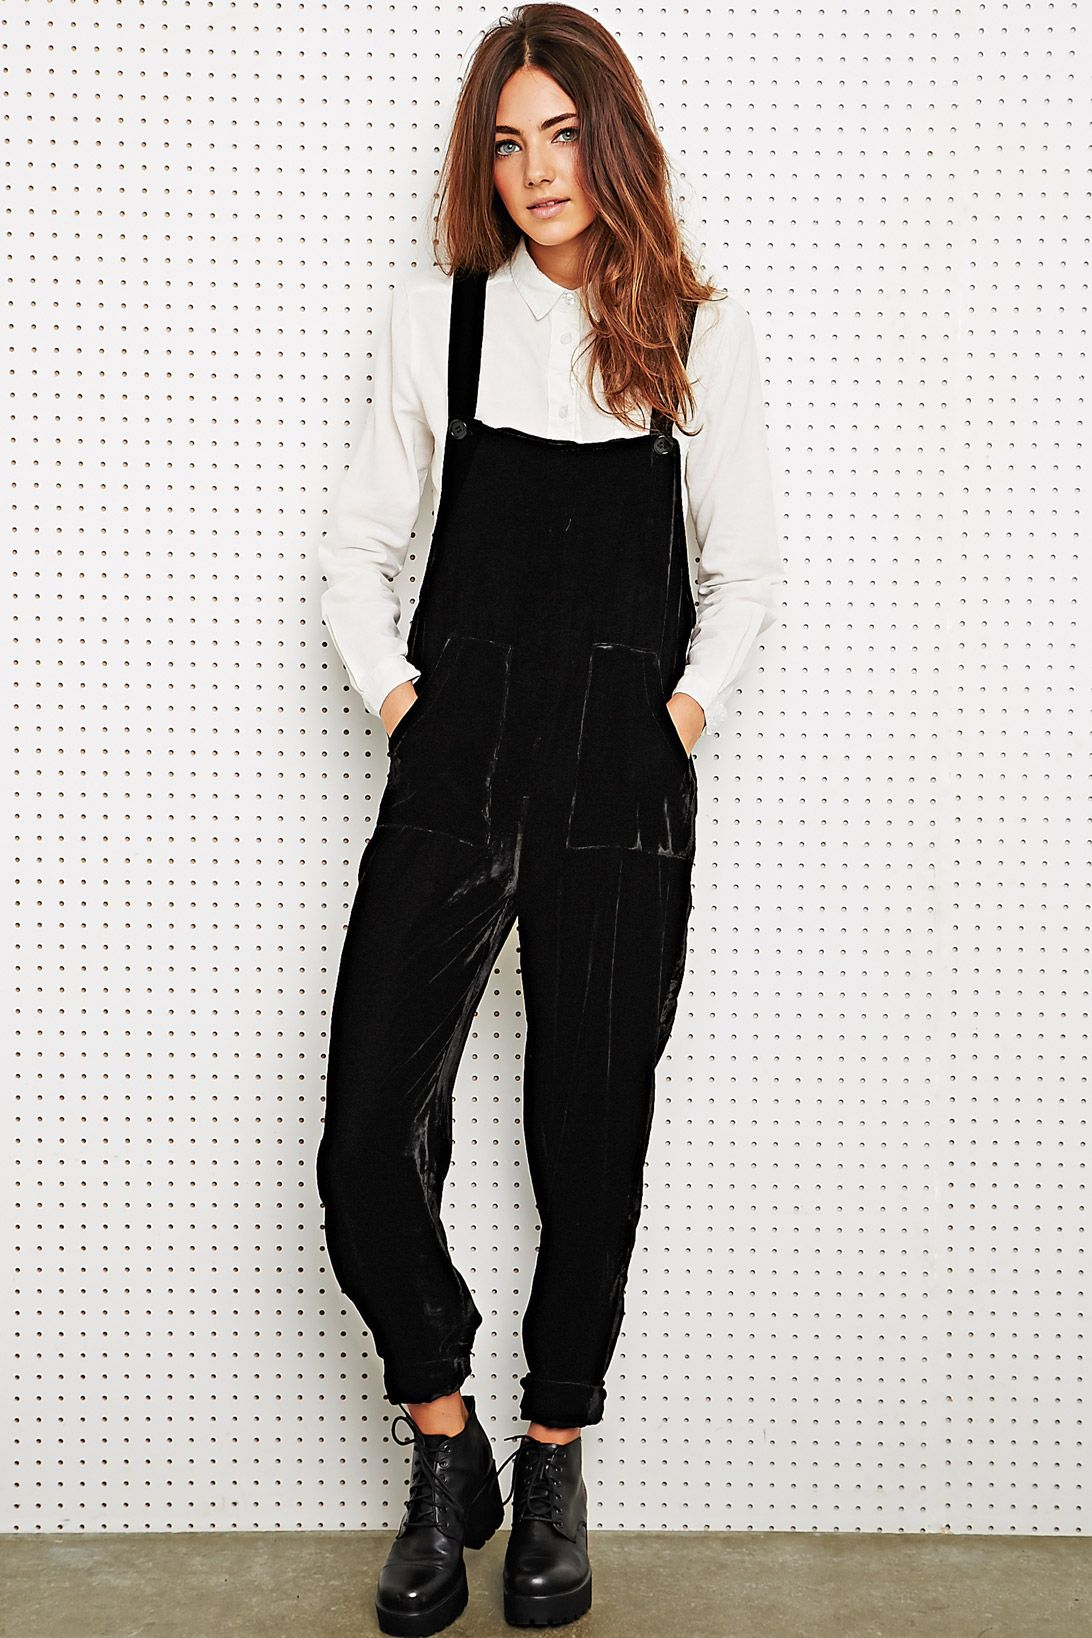 Pin By Ieam Ieamp On Cloth In 2019 Dungarees Outfits